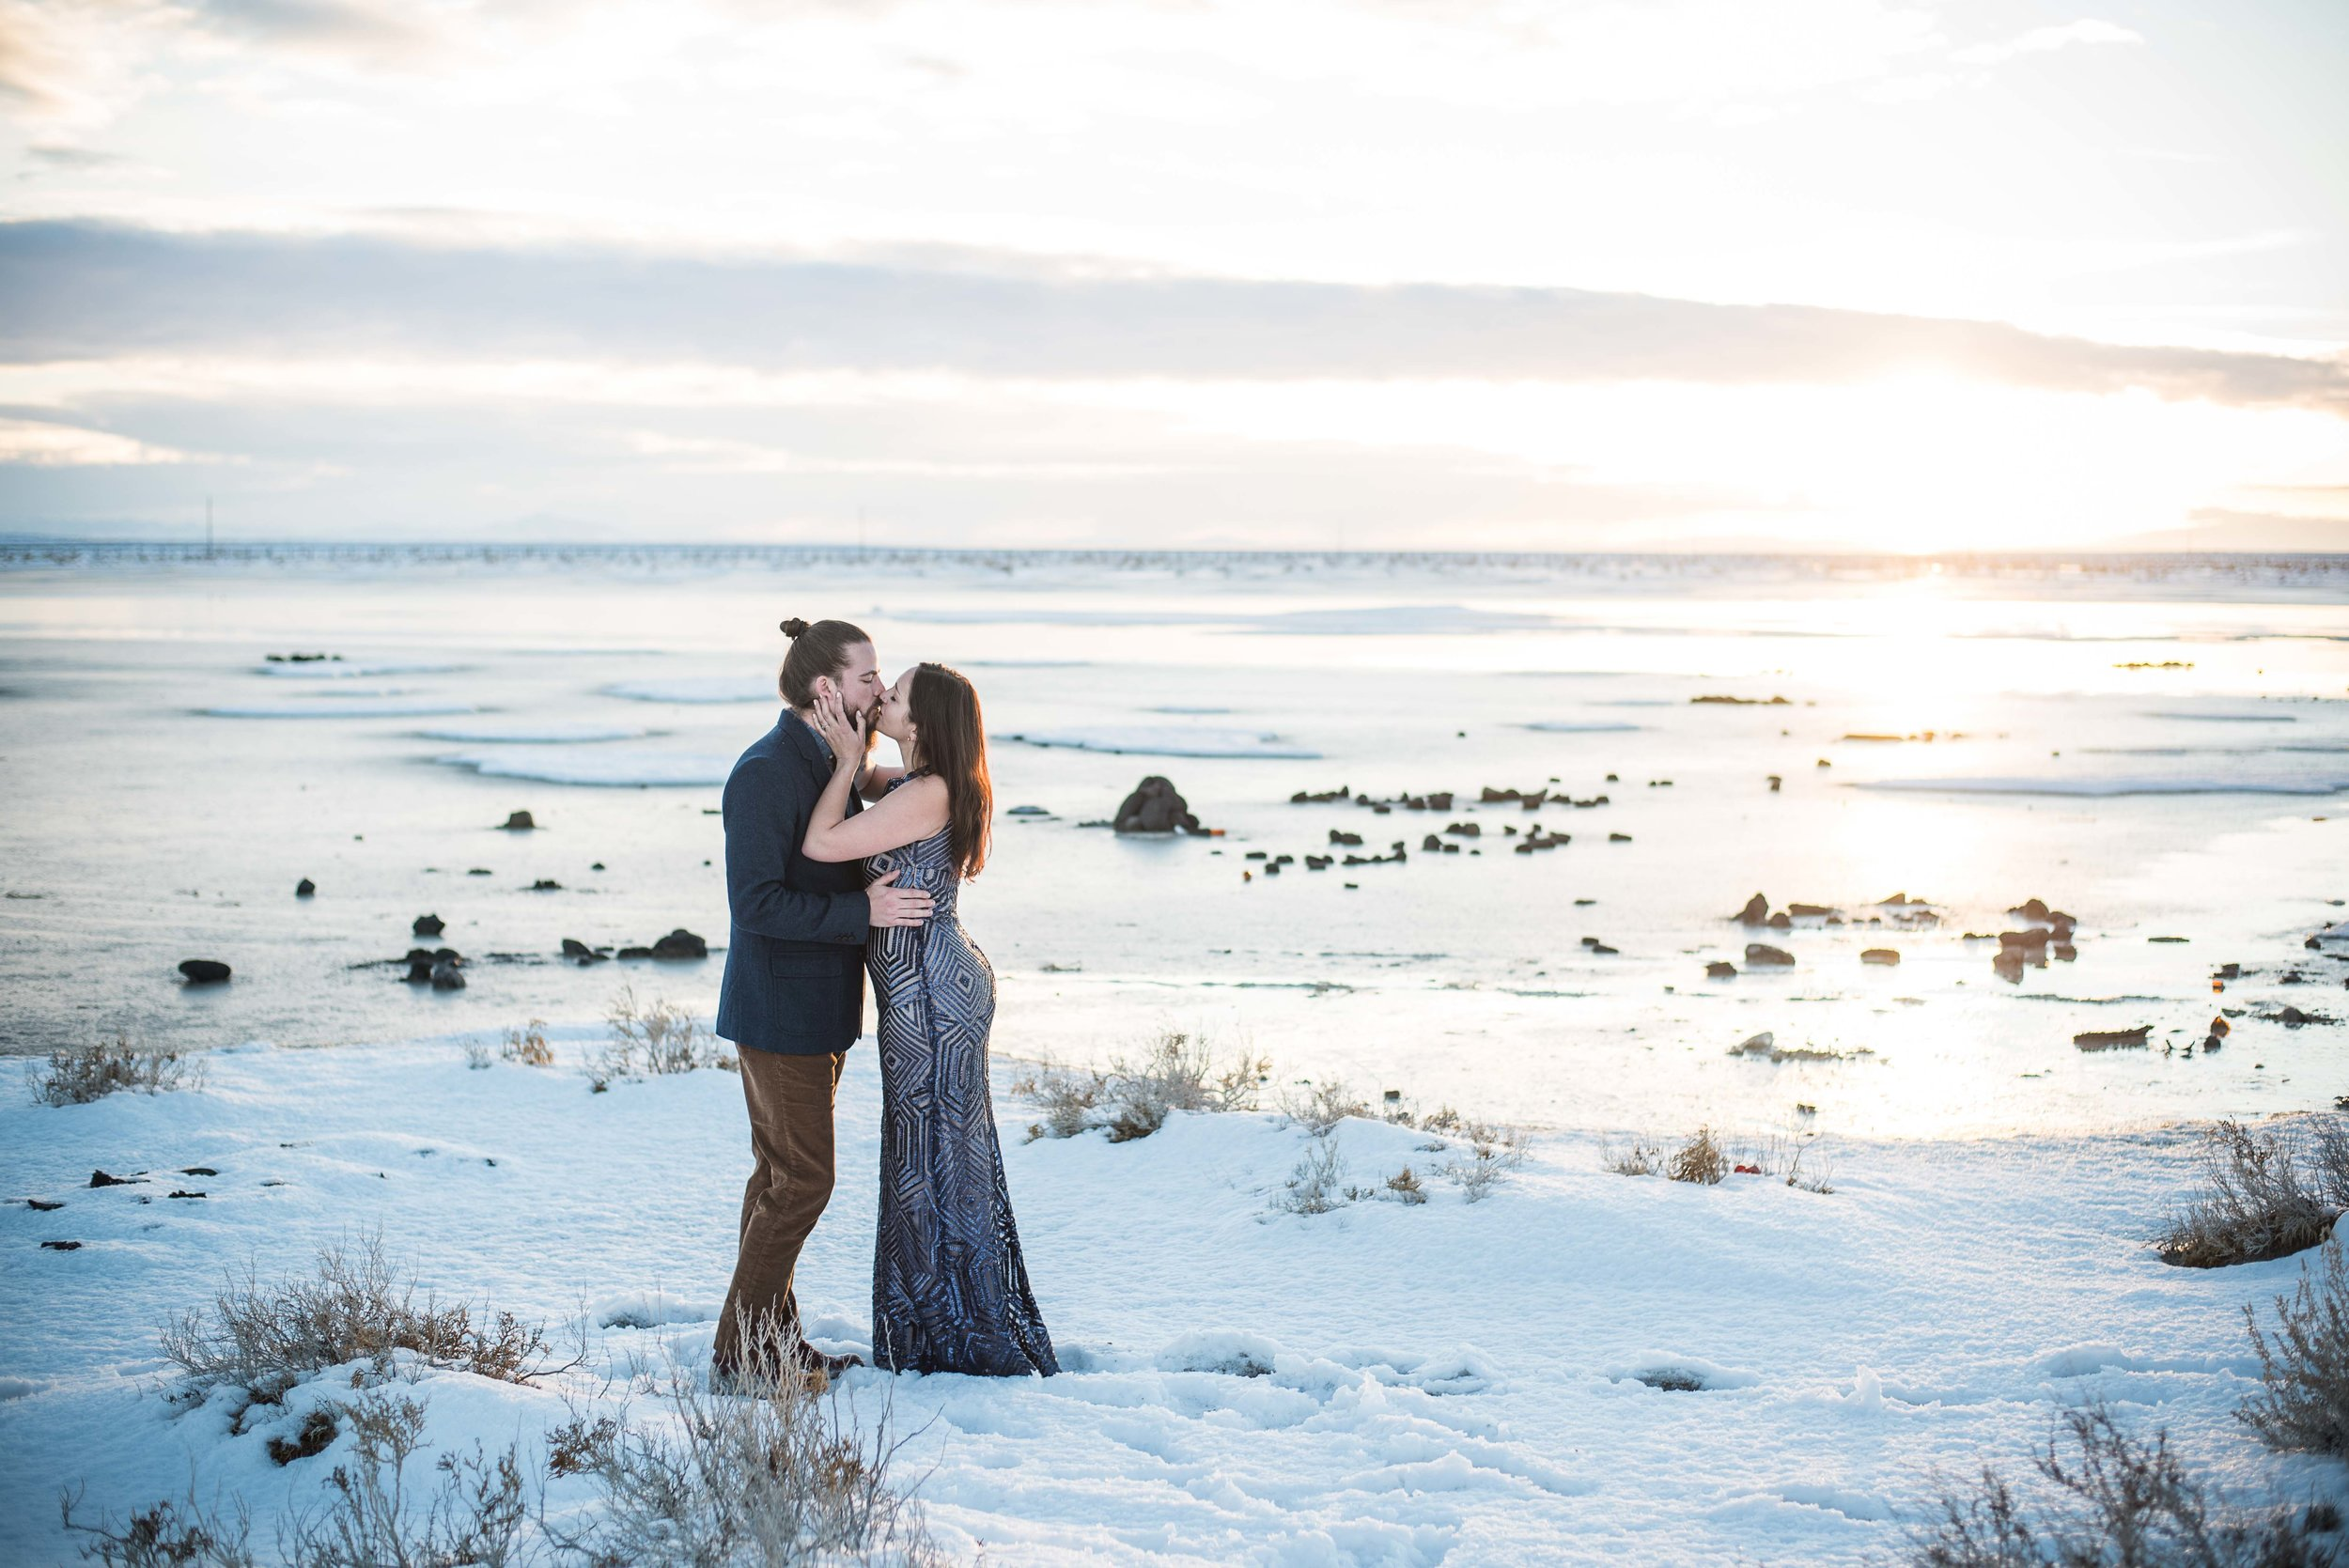 Ciara+Micah-Engagements-Sadie-Banks-Photography-191.jpg